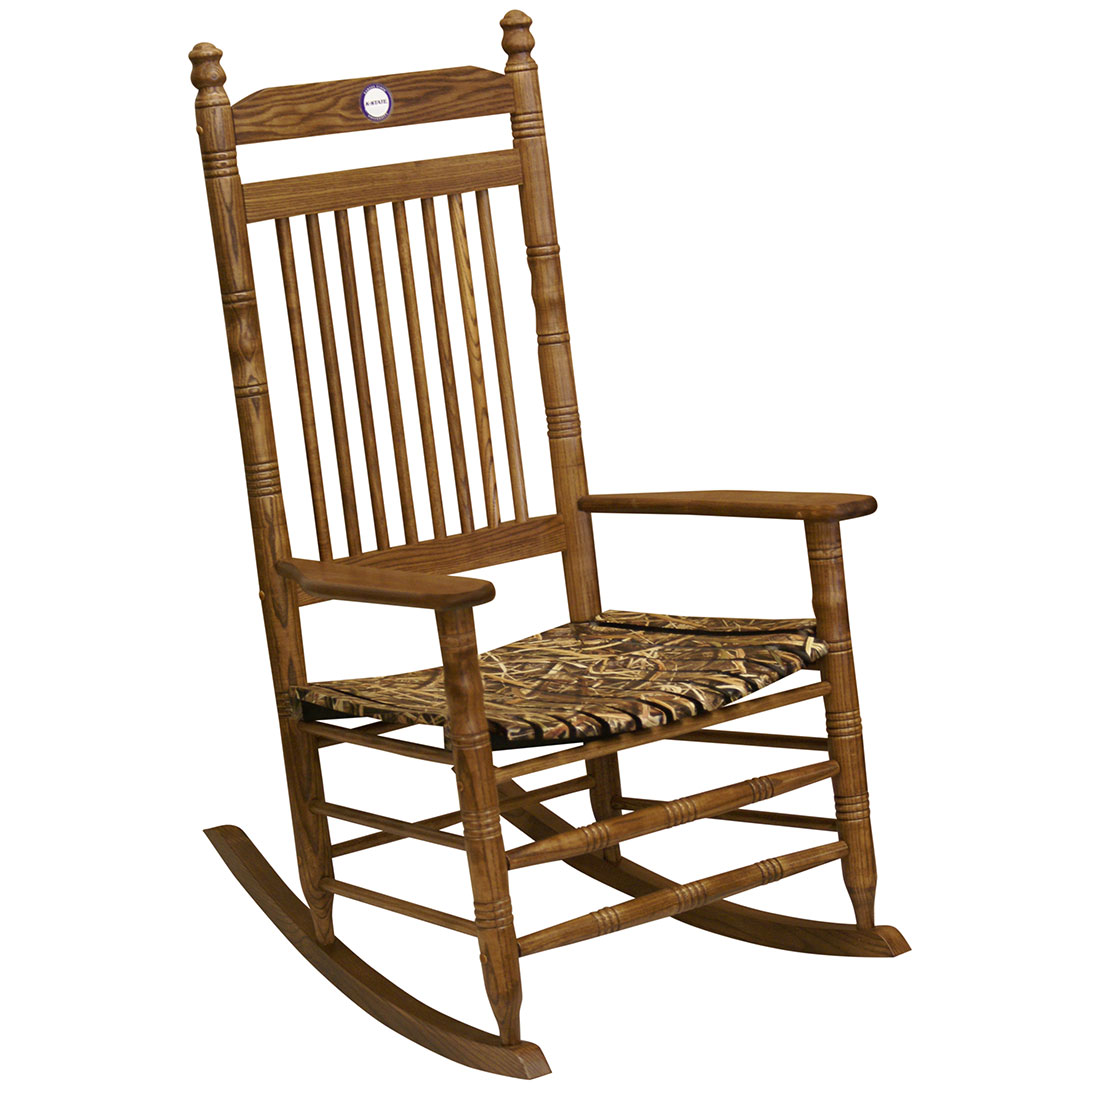 Shop.crackerbarrel.com: Camo Rocking Chair   Kansas State   Cracker Barrel  Old Country Store